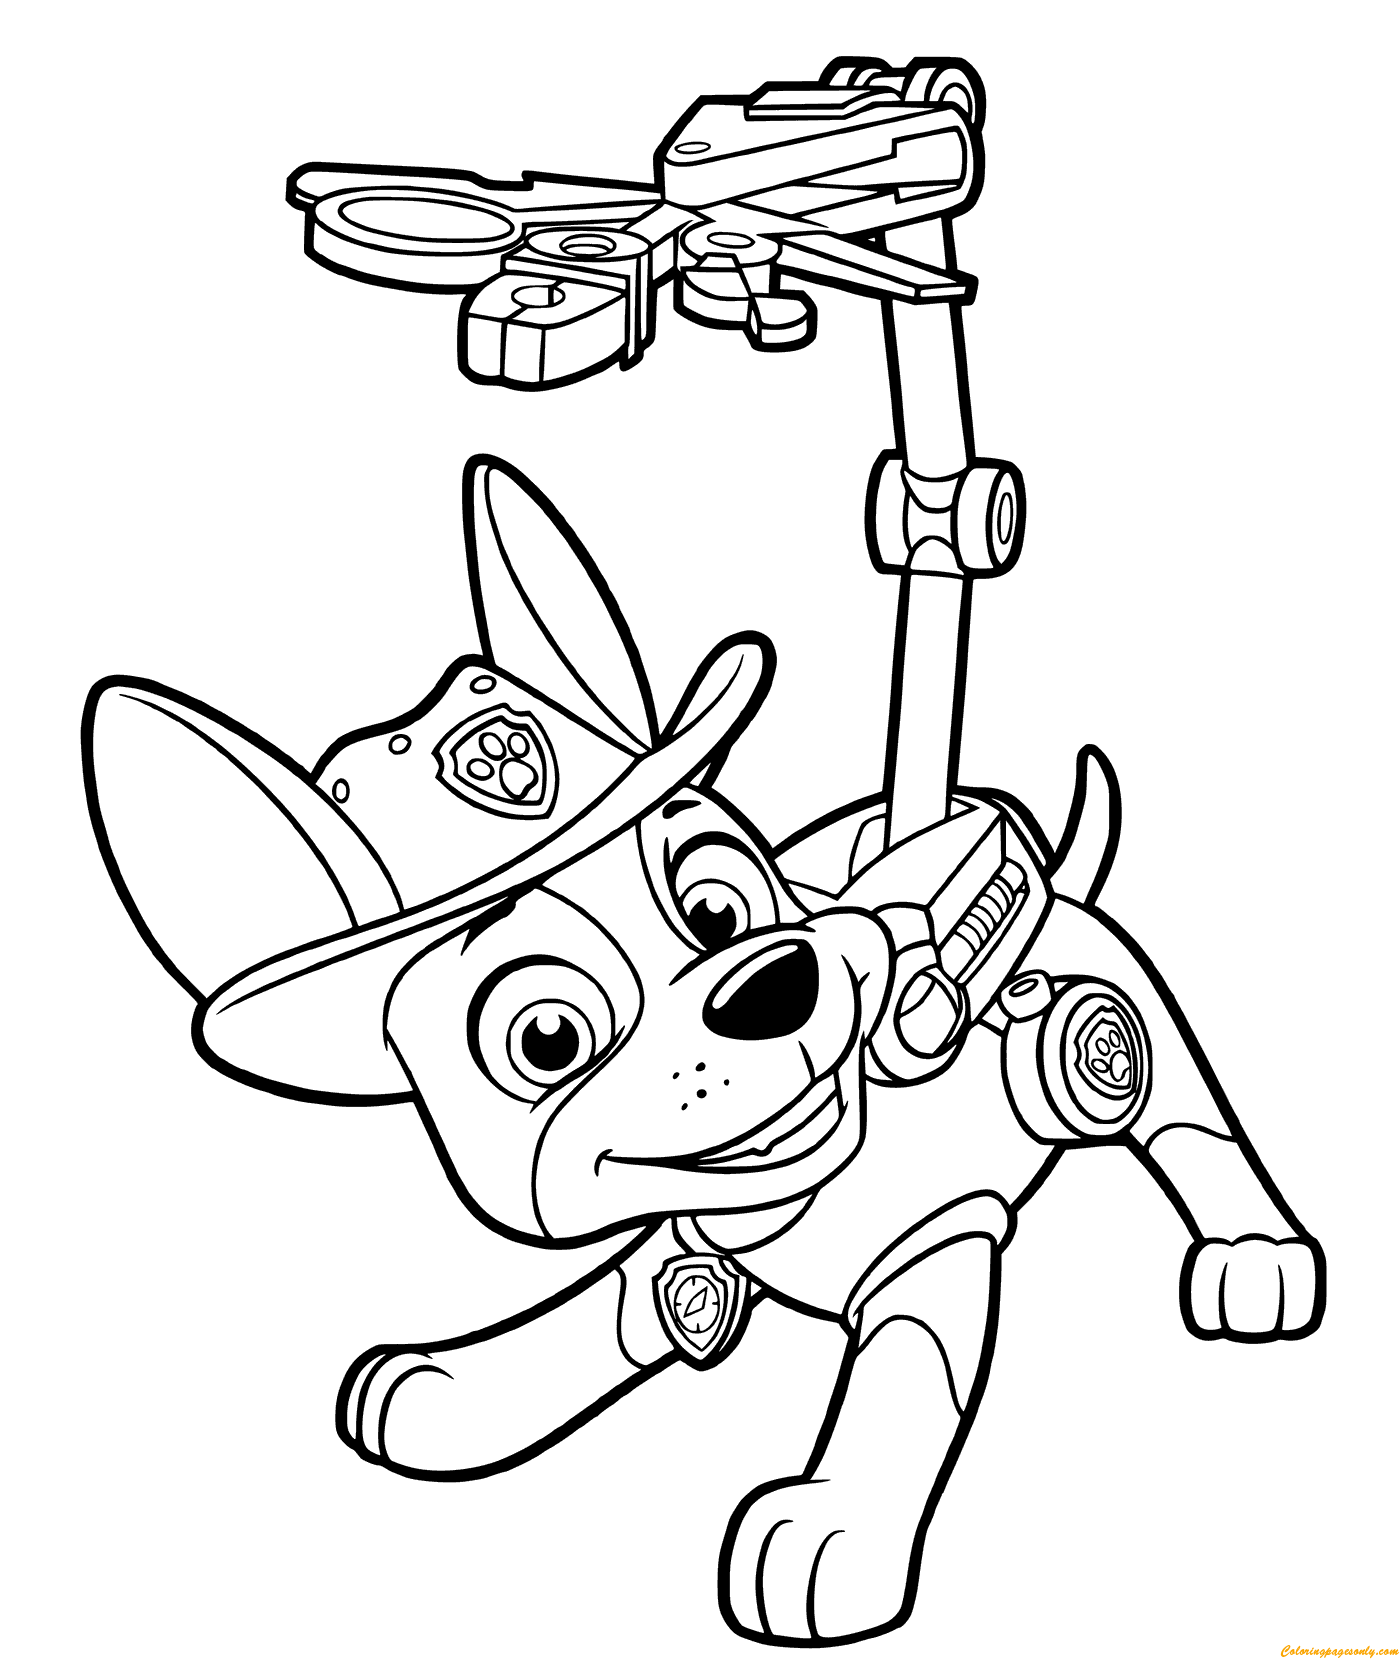 Paw Patrol Tracker Coloring Page: http://coloringpagesonly.com/pages ...